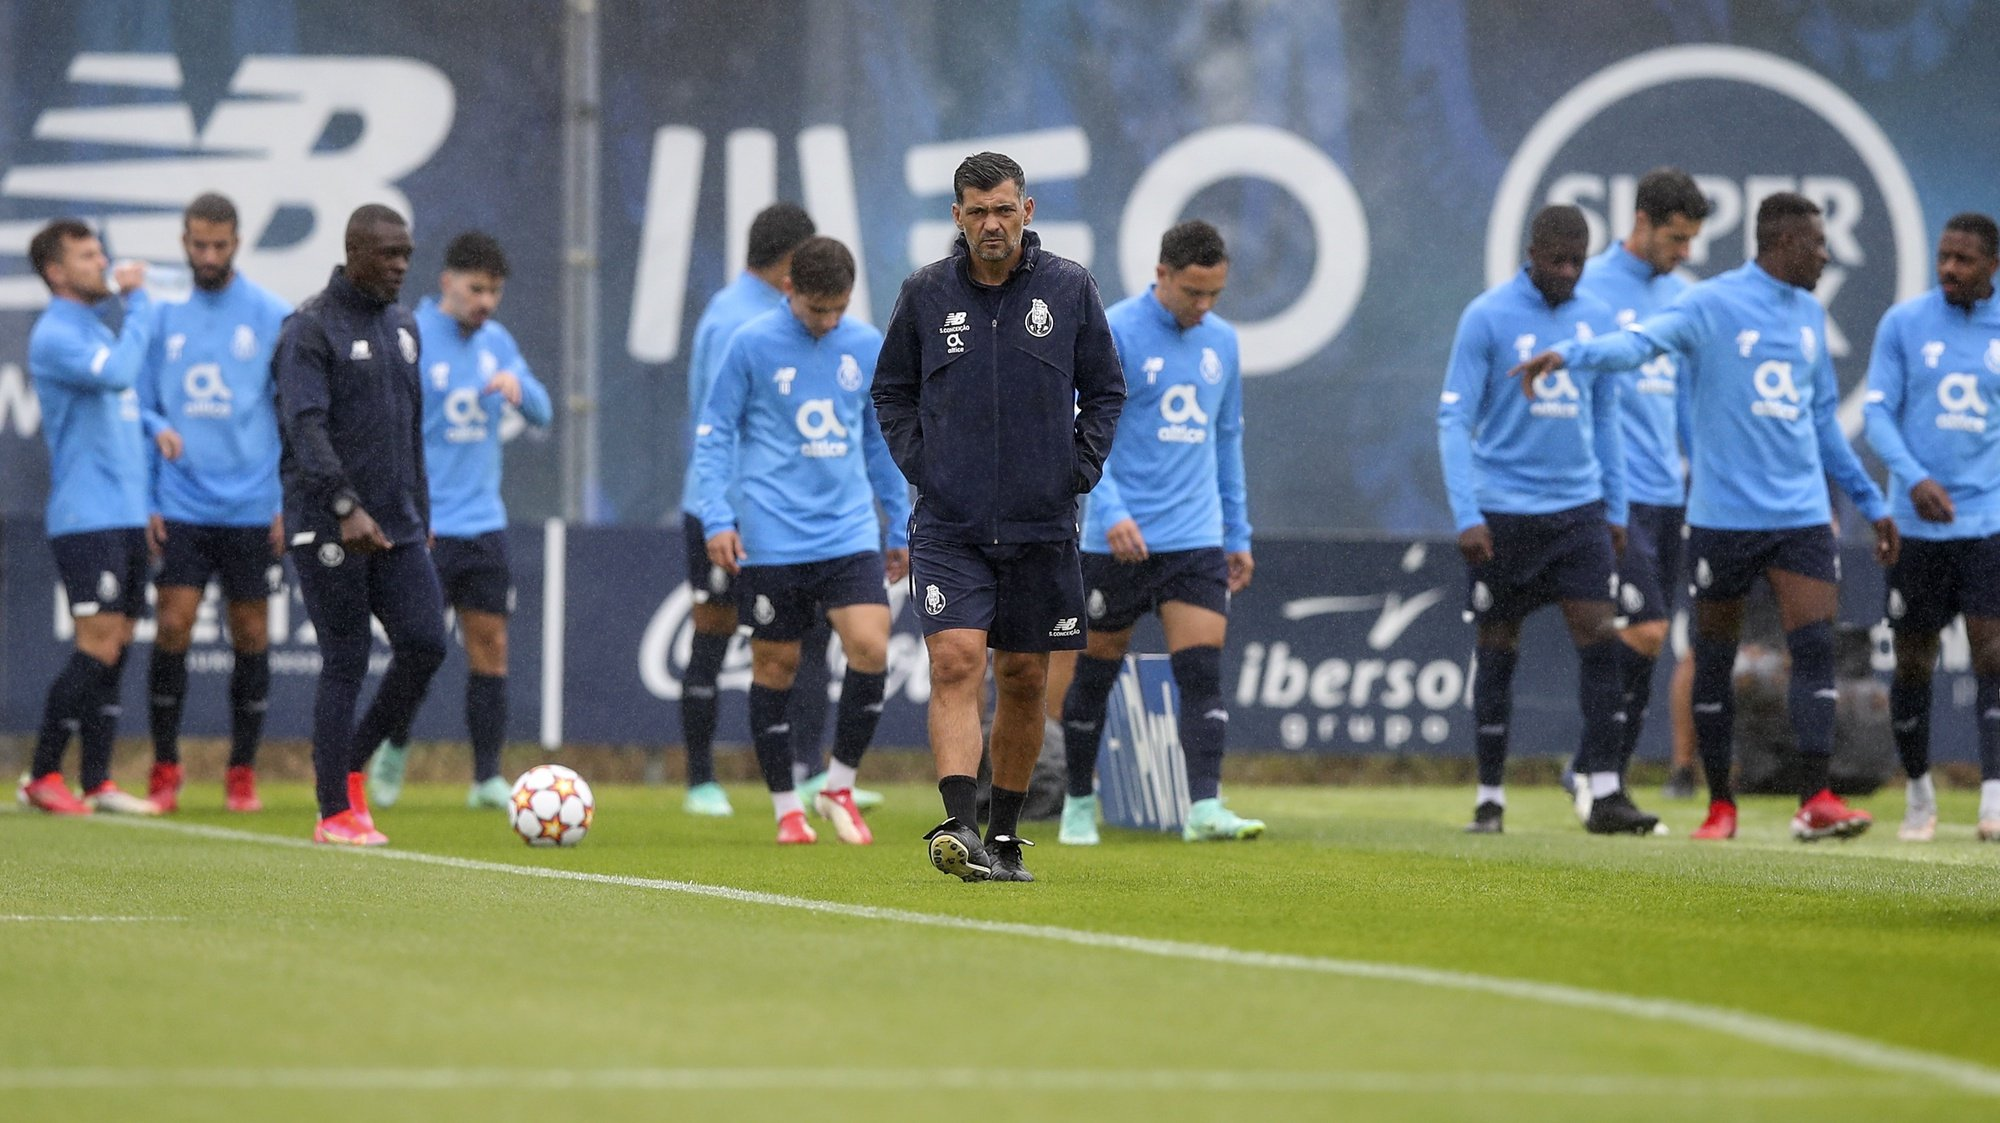 FC Porto's head coach Sergio Conceicao during his team training session at Olival training center, Vila Nova de Gaia, 27th September 2021. FC Porto will face Liverpool in their UEFA Champions L?eague group B stage soccer match on 28th September 2021.JOSE COELHO/LUSA